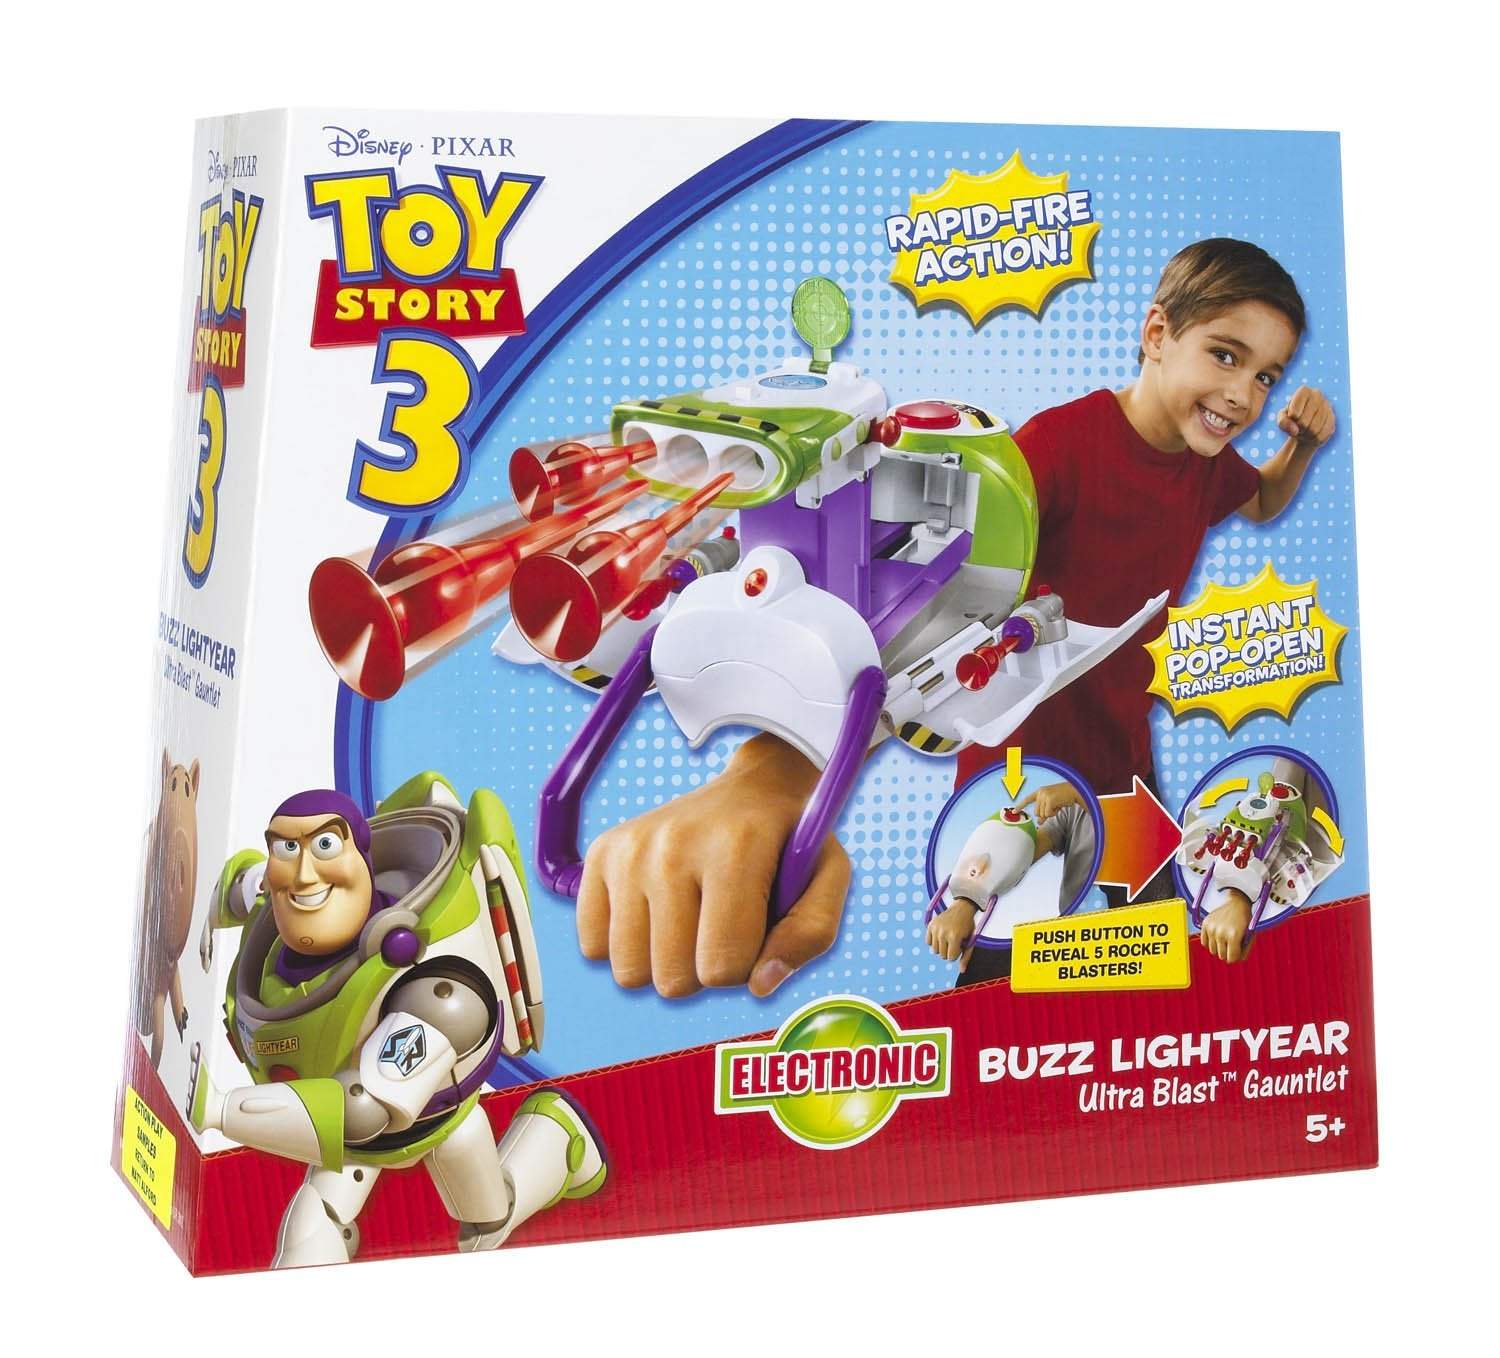 Toy story Buzz lightyear ultra blast gauntlet